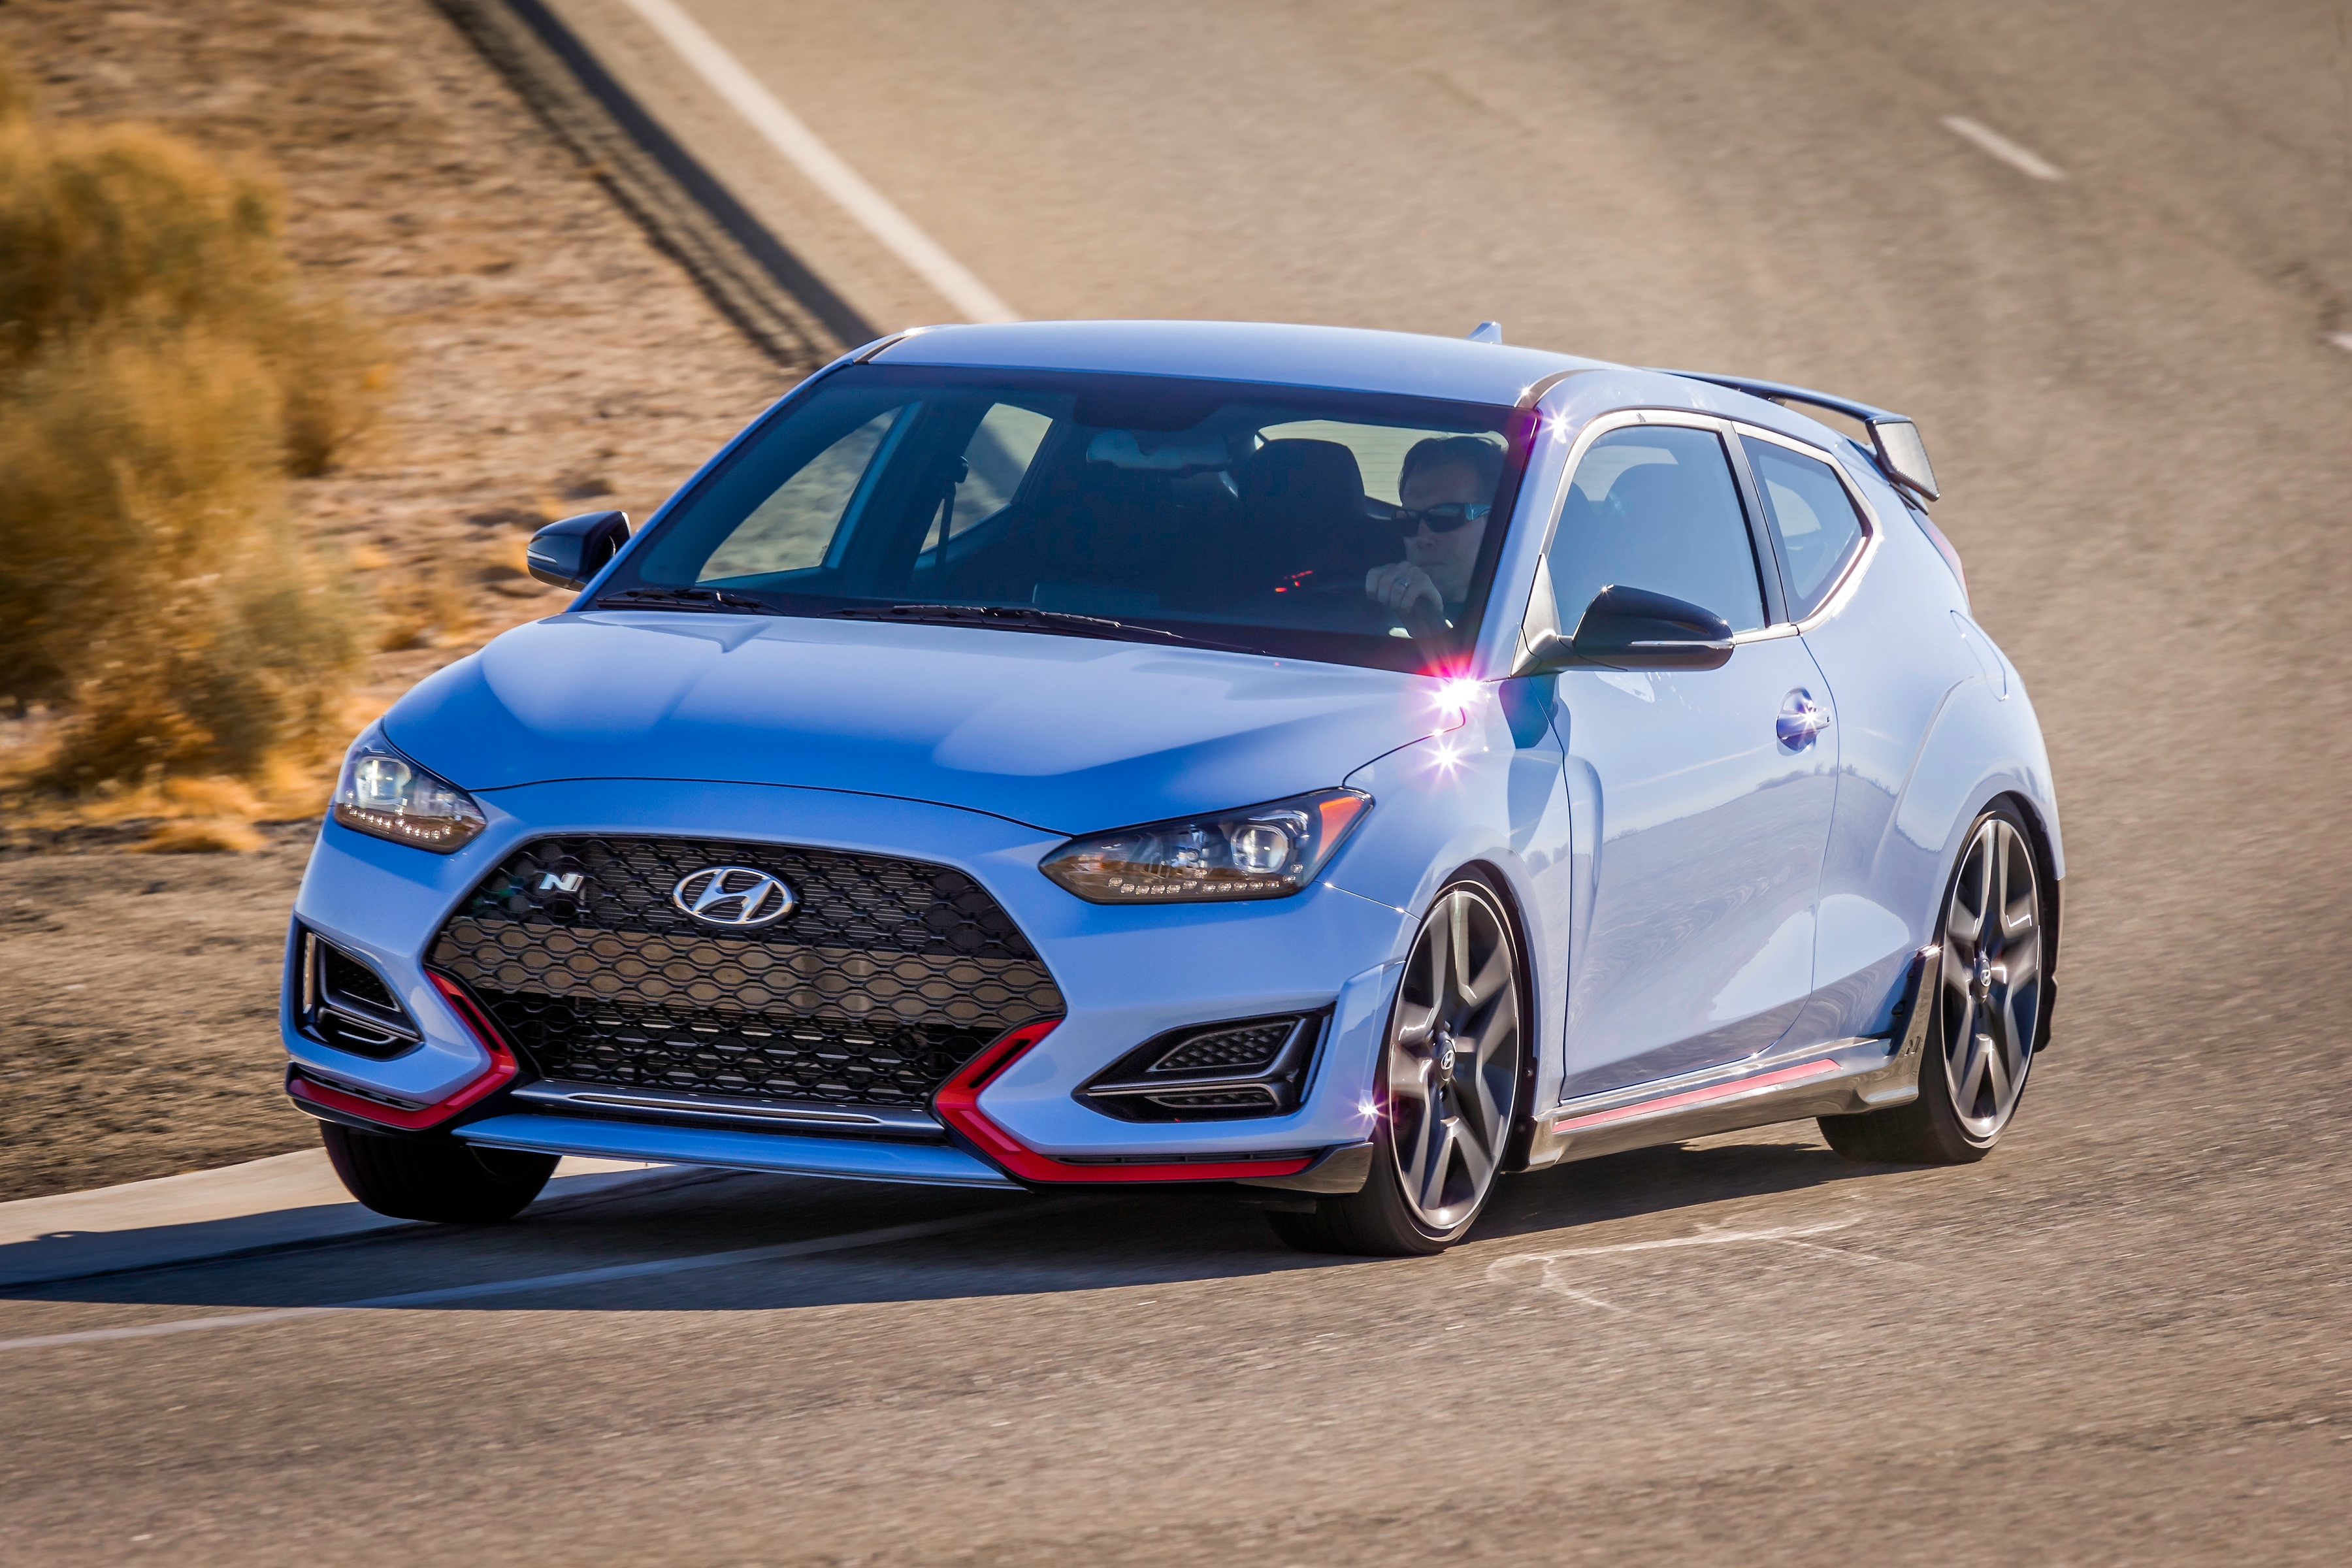 Hyundai Introduces 2019 Veloster N, First U.S. Market N-Brand High-Performance Model, at Thunderhill Raceway